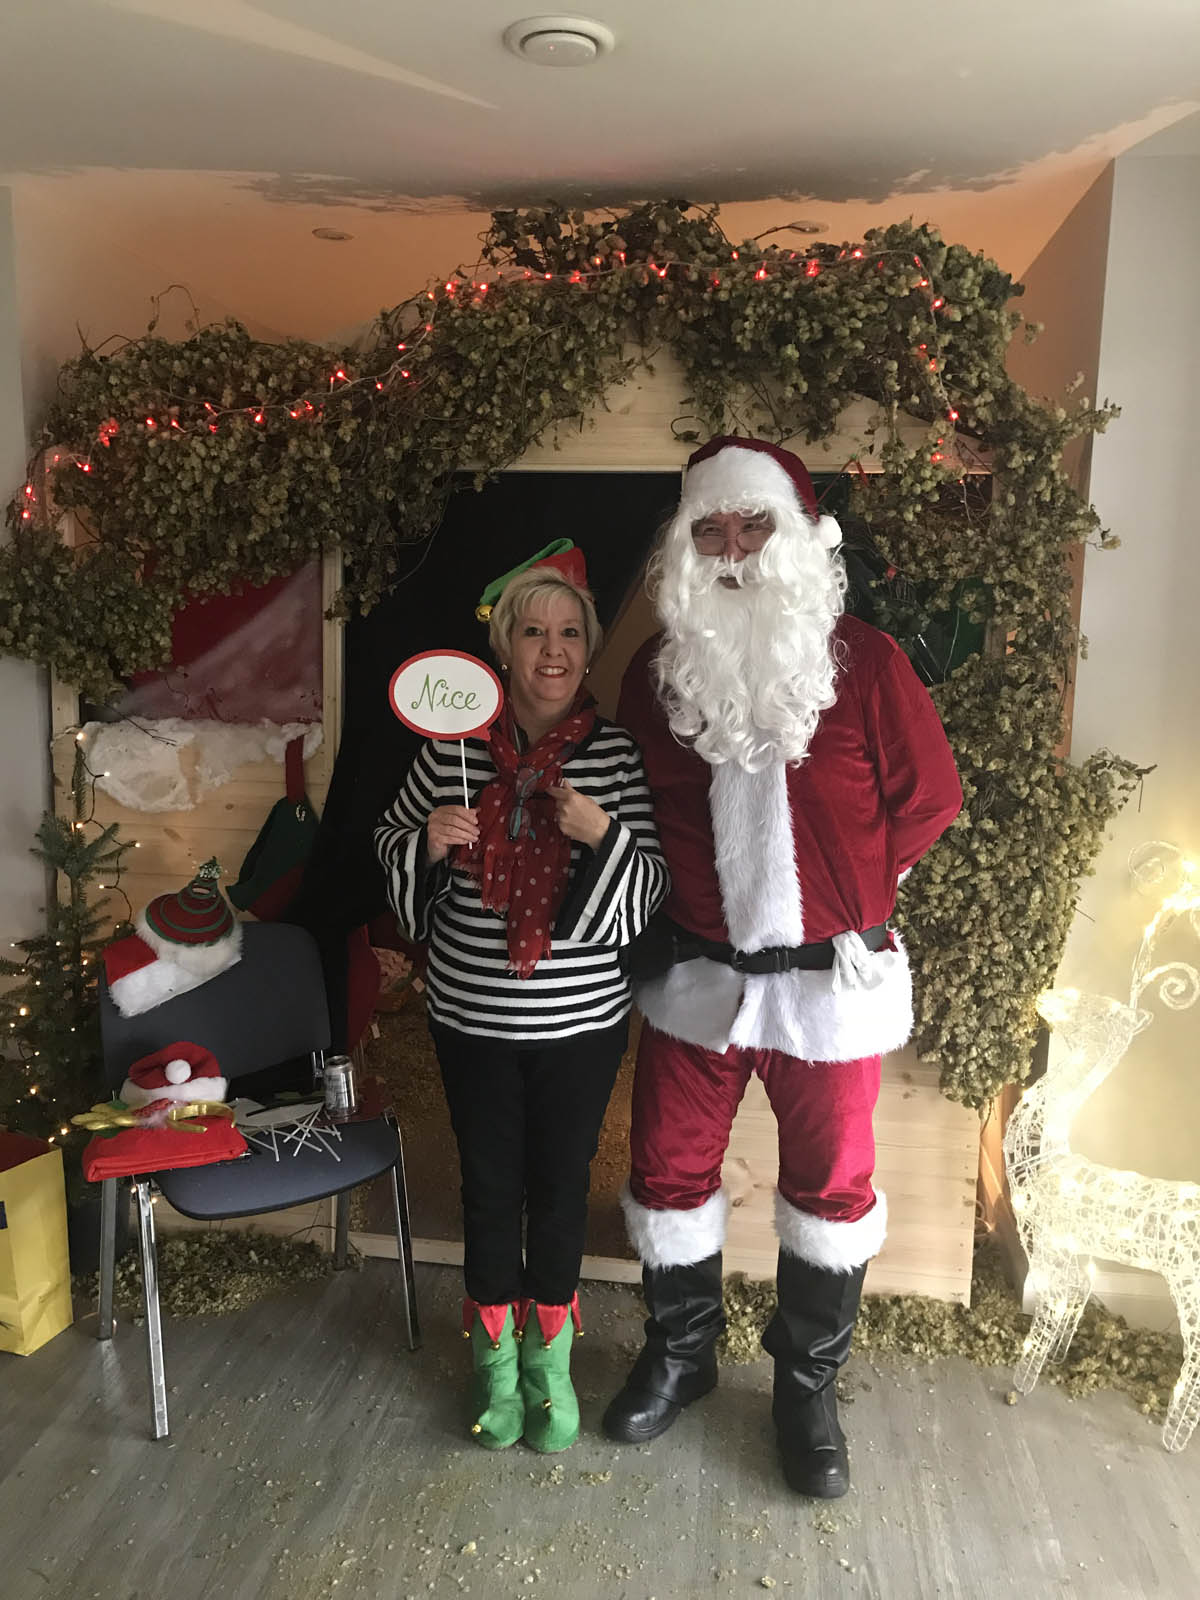 santa claus at christmas event organised by community event planner birch associates